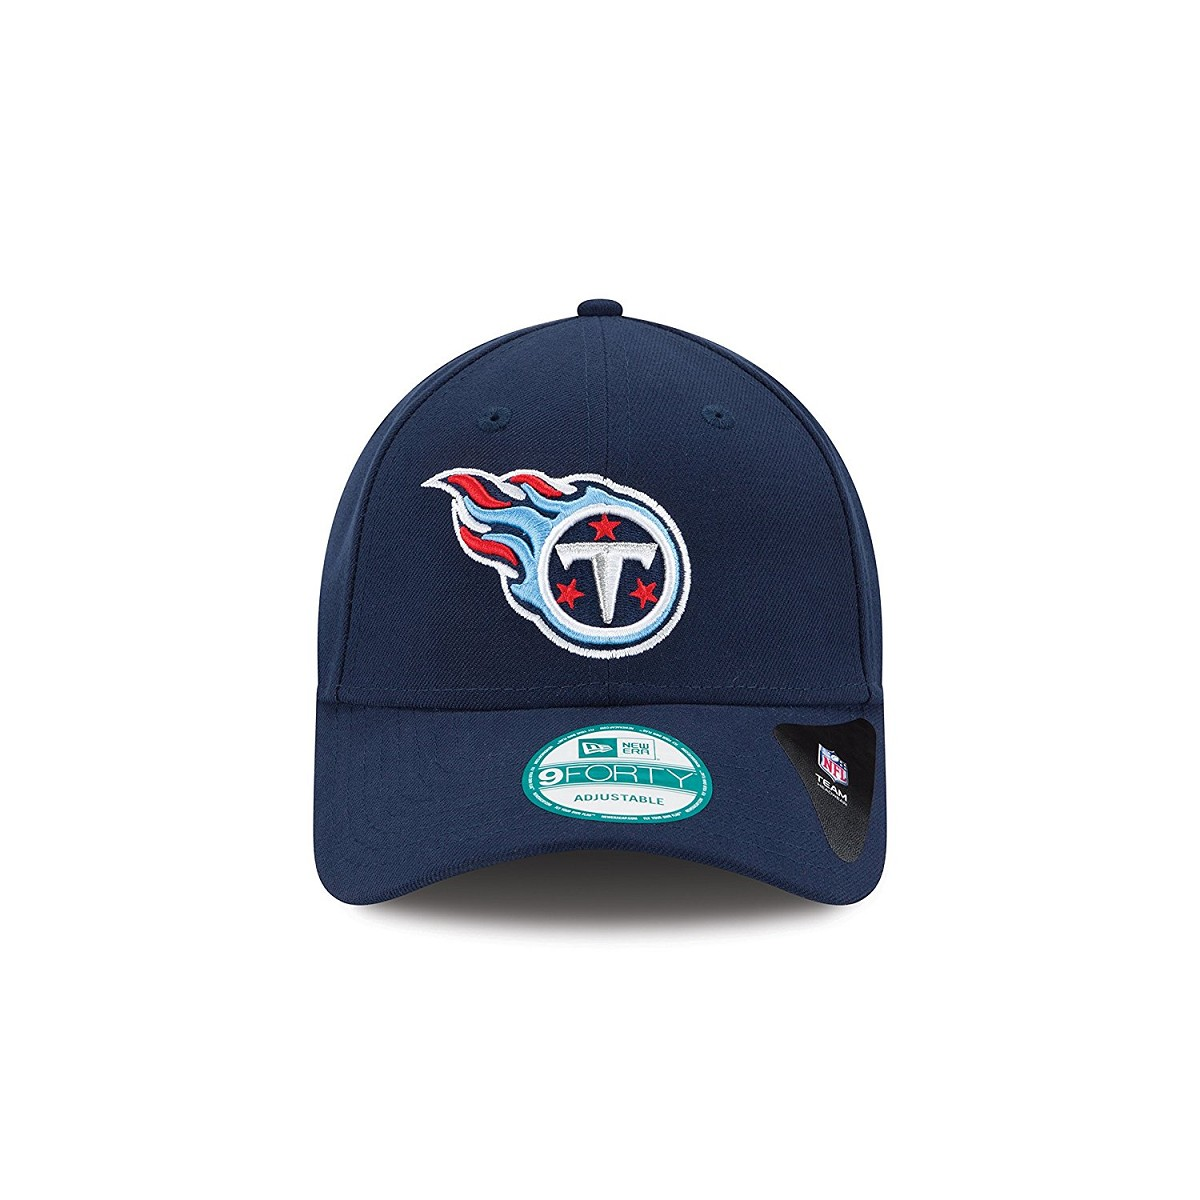 Cappello New Era 9forty The League Nfl Tennessee Titans